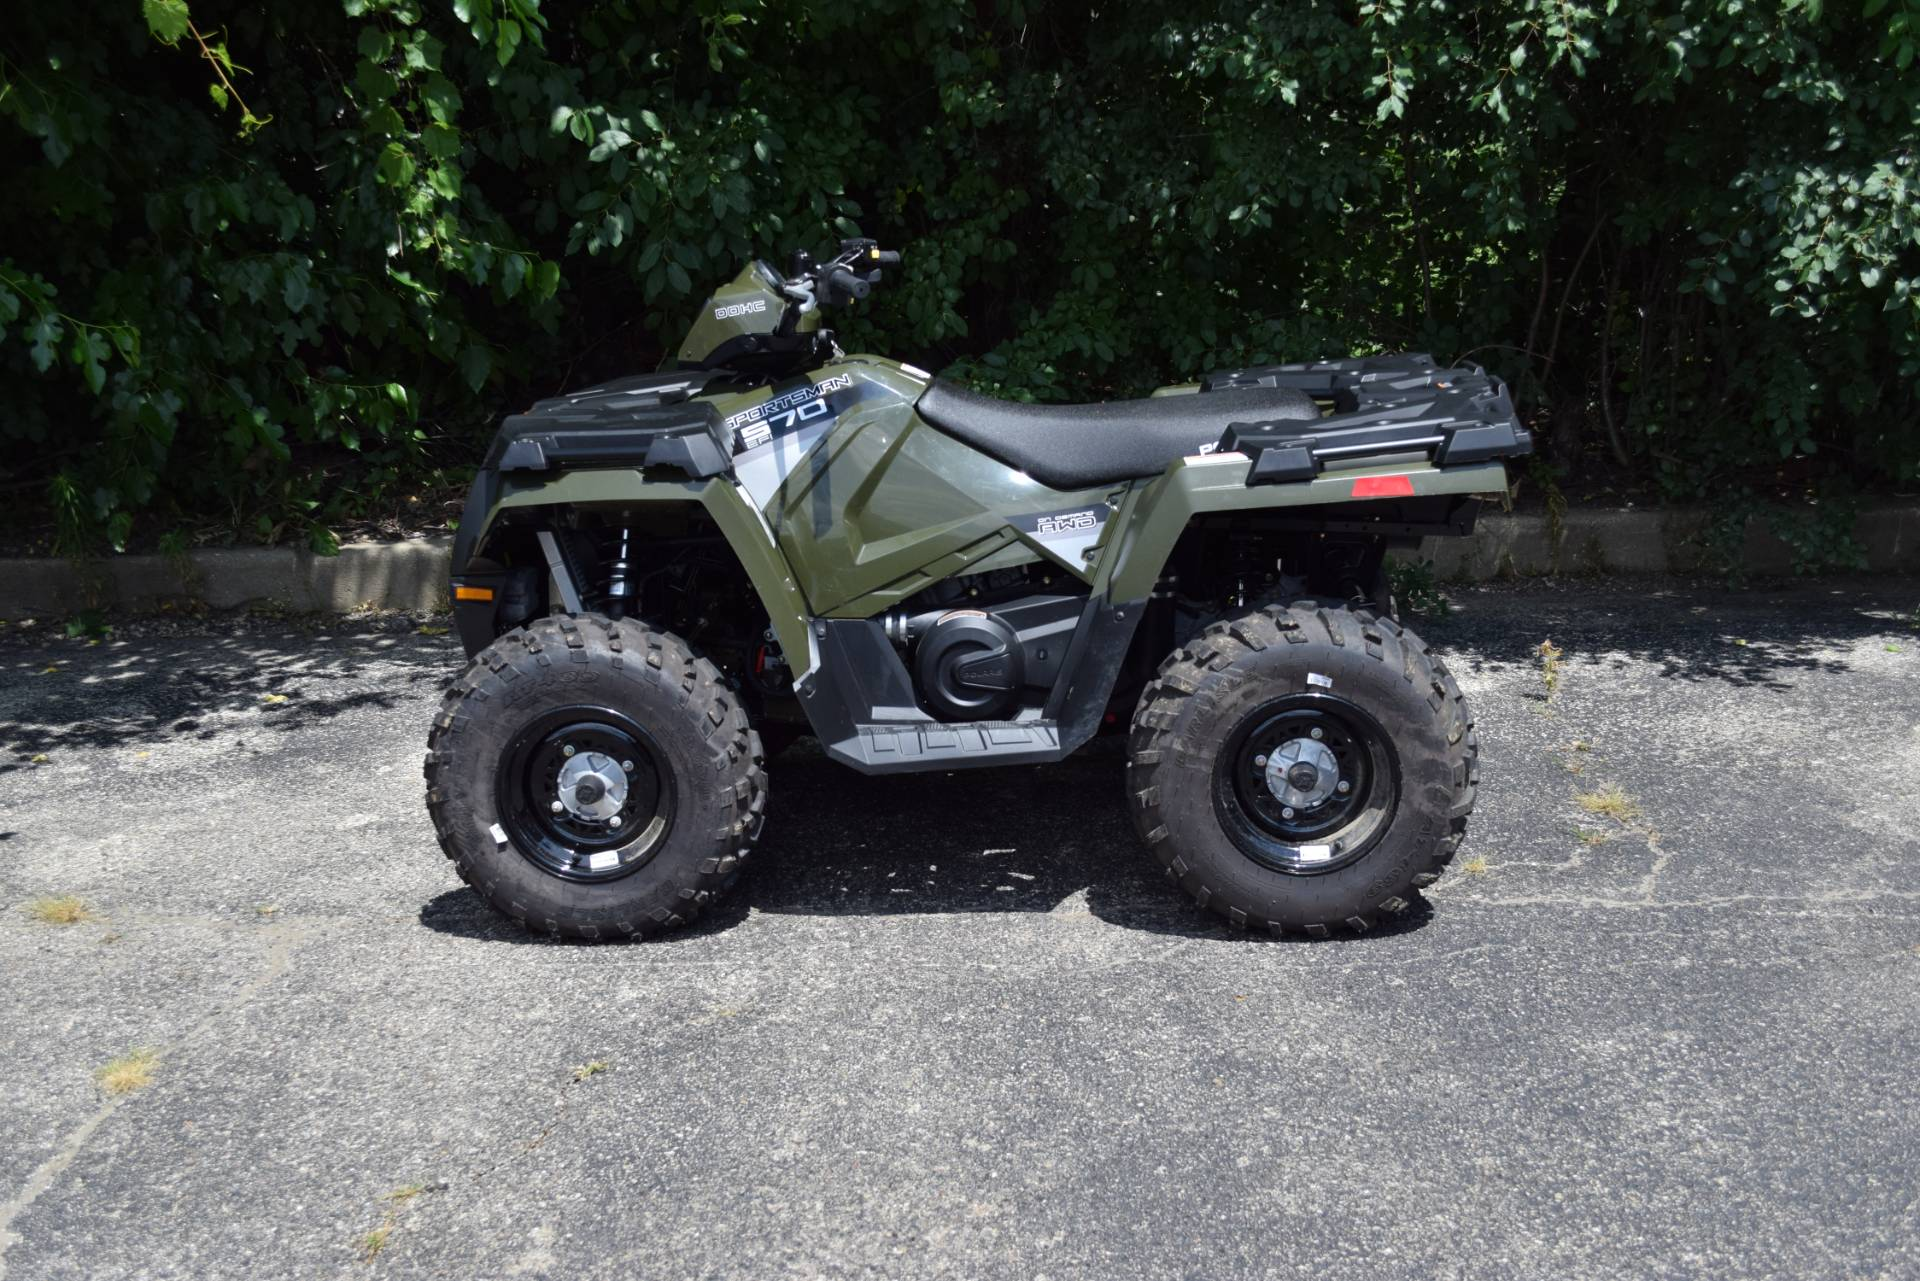 2016 Polaris Sportsman 570 in Wauconda, Illinois - Photo 16